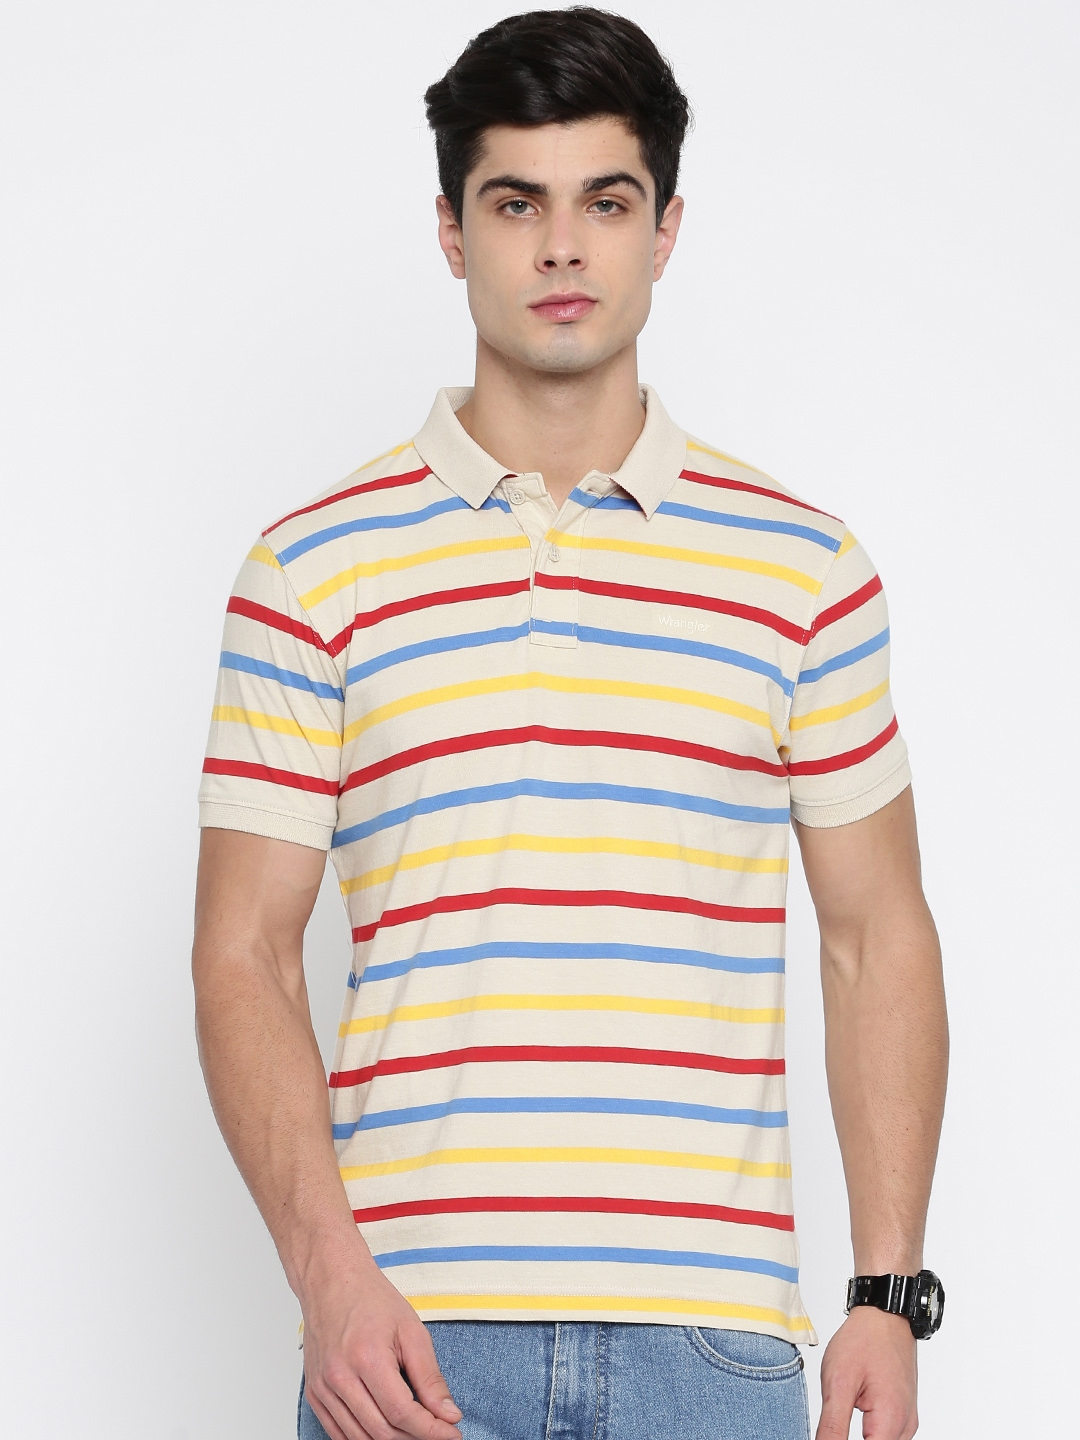 fc06aee6 Wrangler Striped Mens Polo T Shirt – EDGE Engineering and Consulting ...